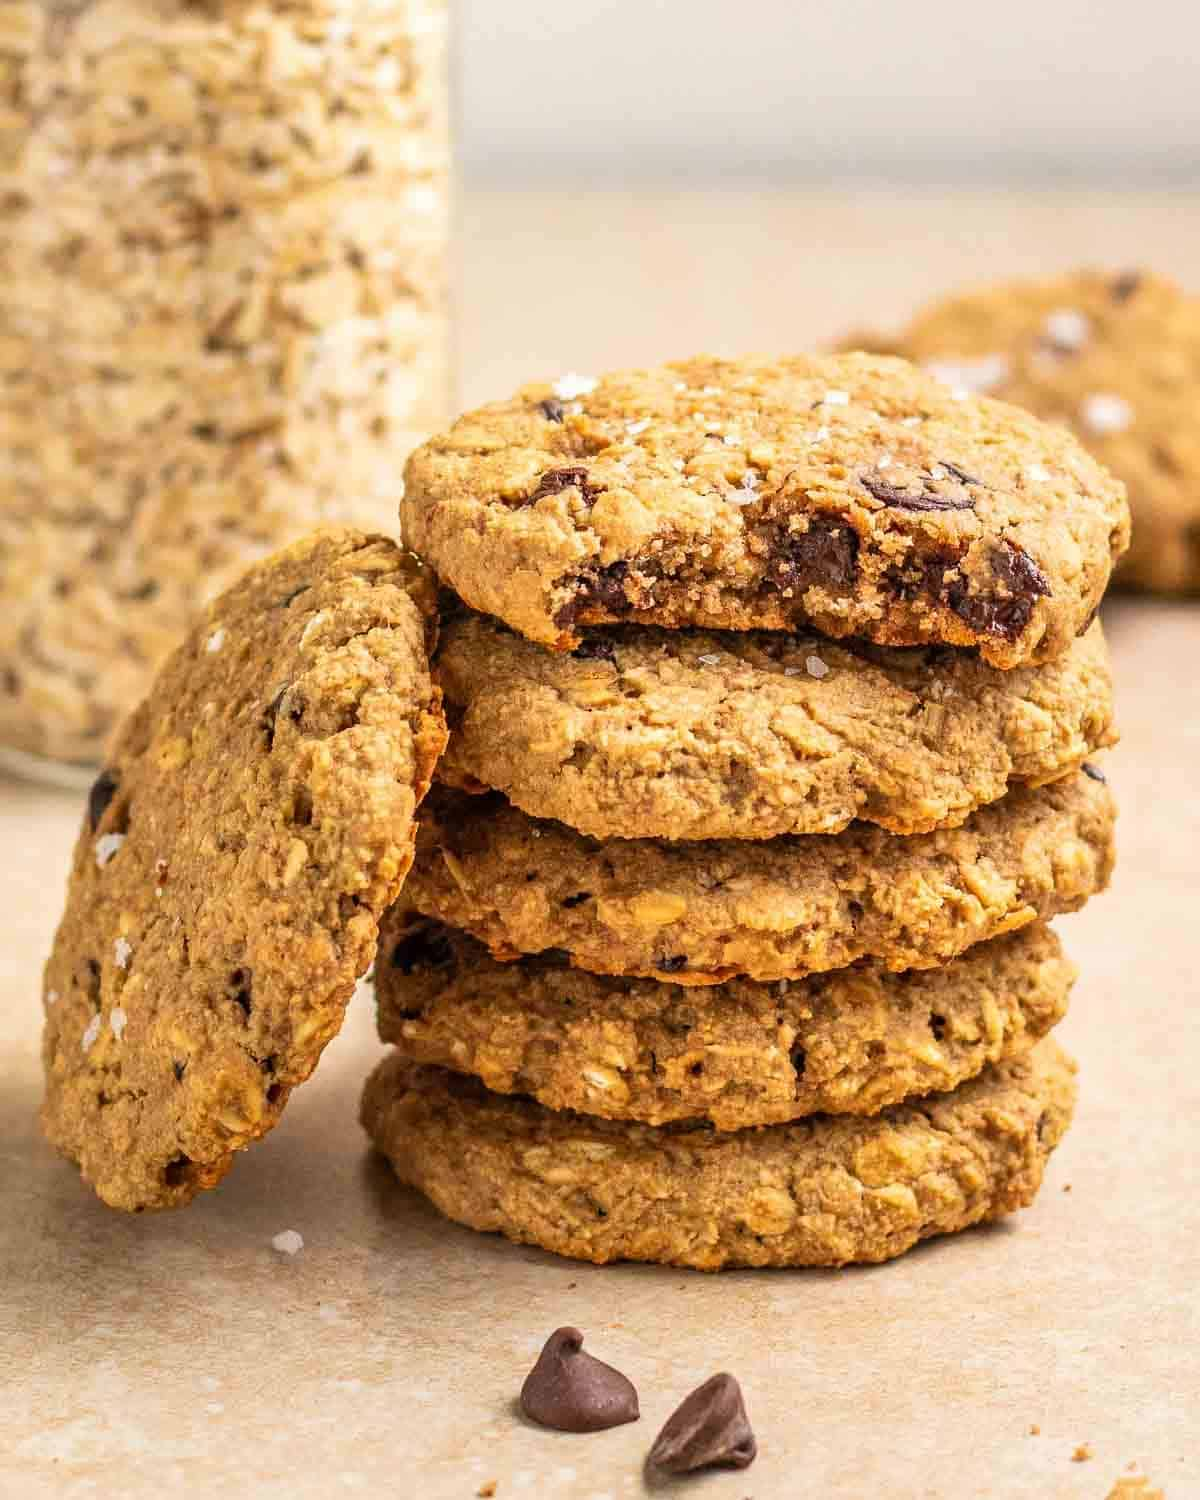 A stack of applesauce cookies with a jar of oats and more cookies in the background.